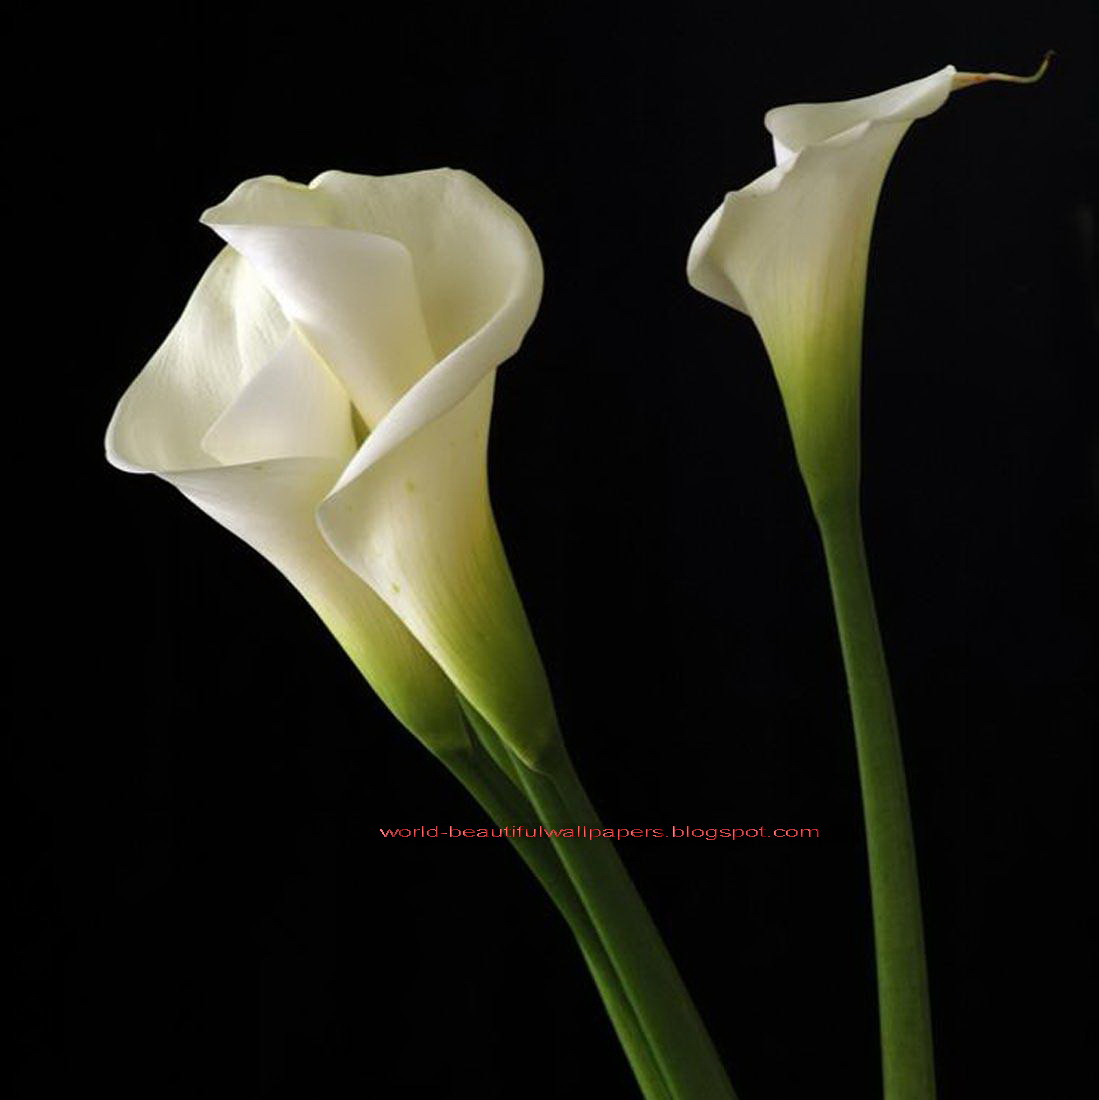 Beautiful Wallpapers calla lily flowers wallpaper